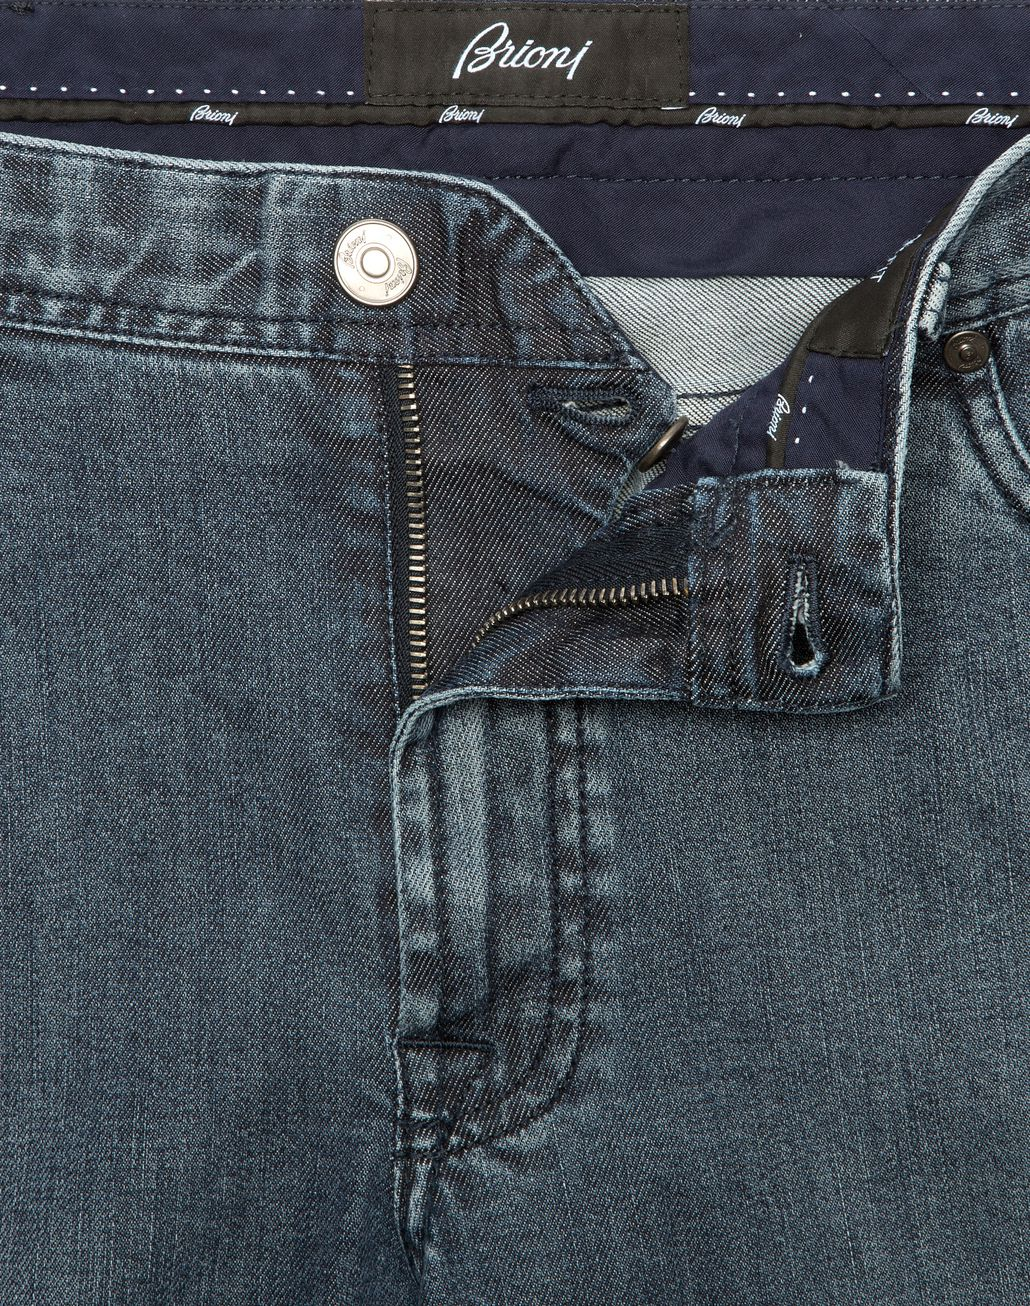 BRIONI Jeans in Marineblau Meribel Denim Herren a